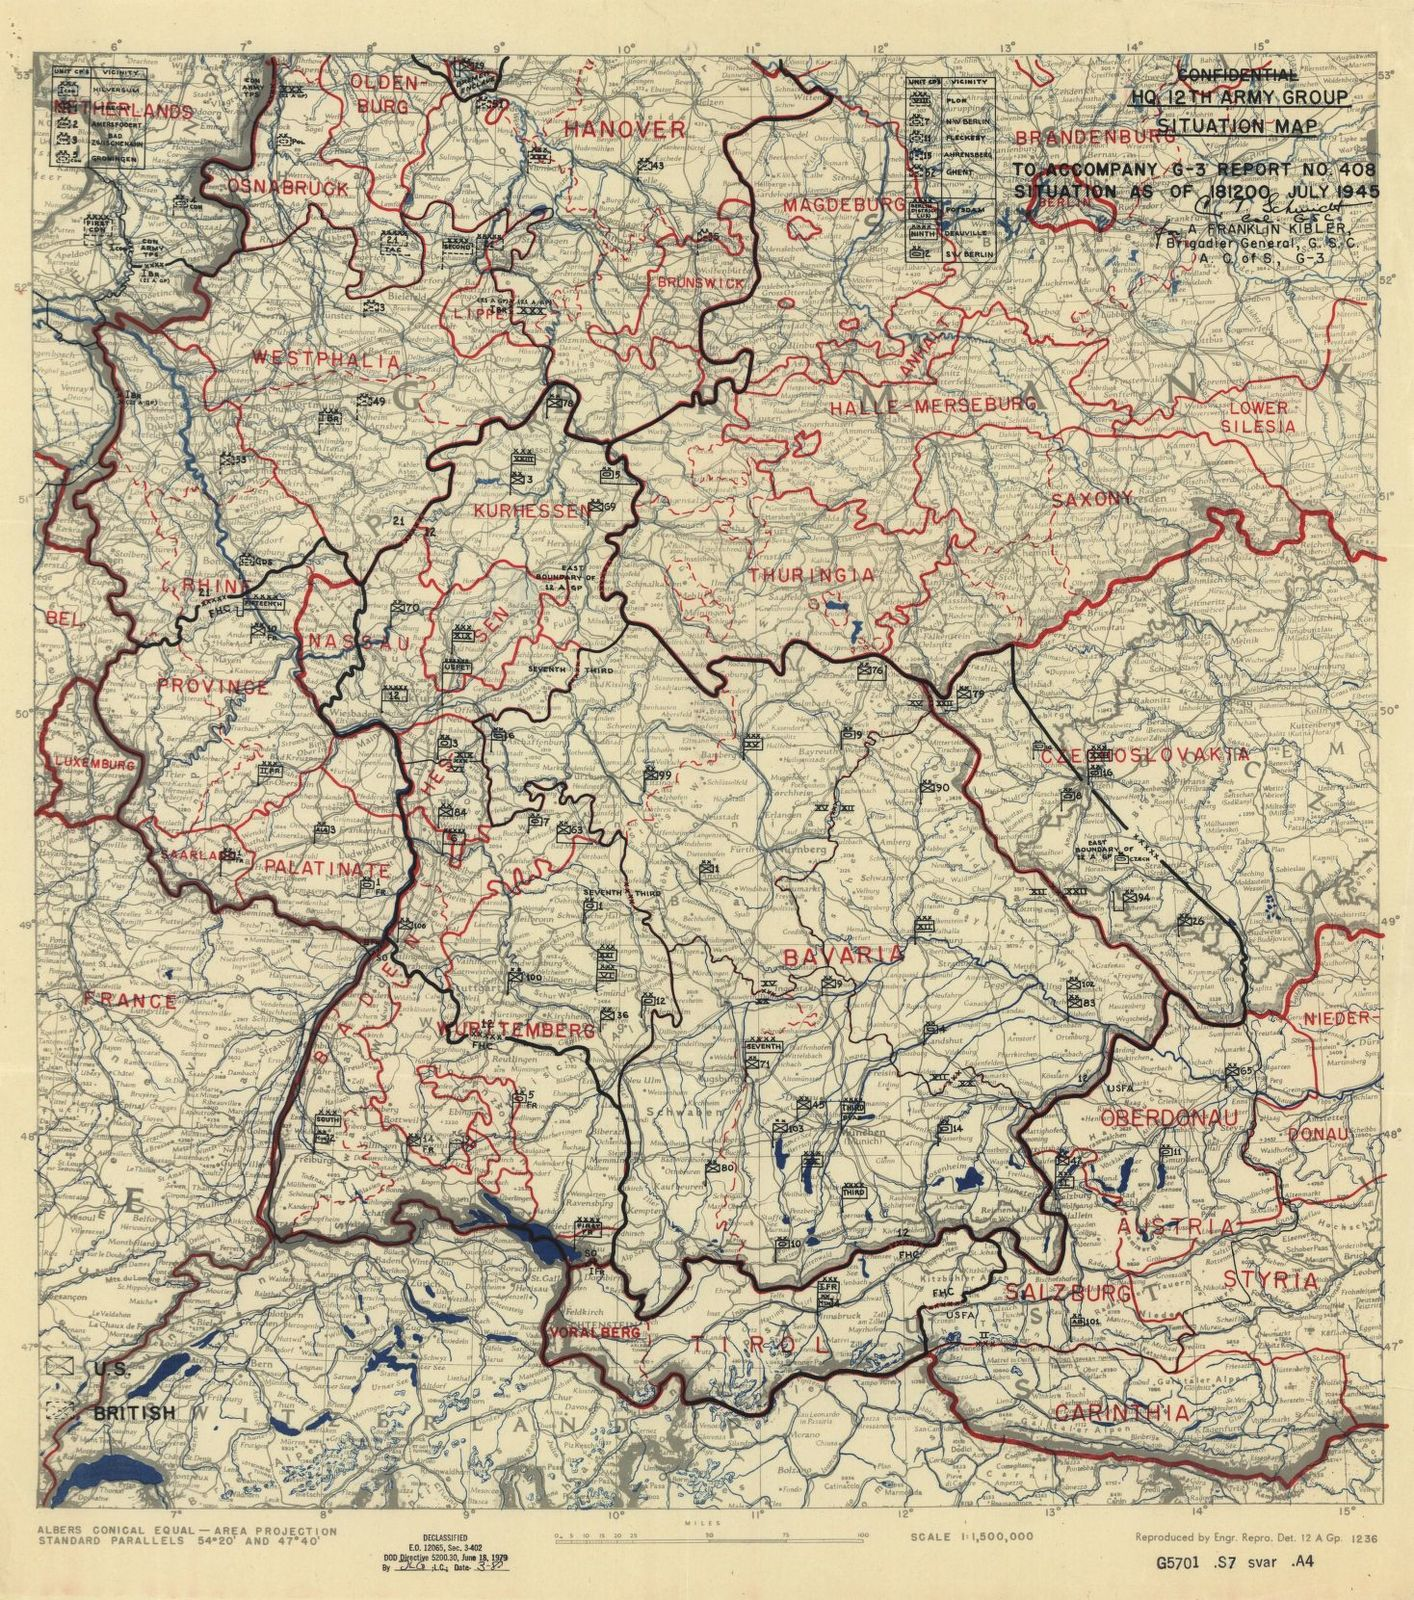 Map Of France 1600.Hq Twelfth Army Group Situation Map Battle Of The Bulge France